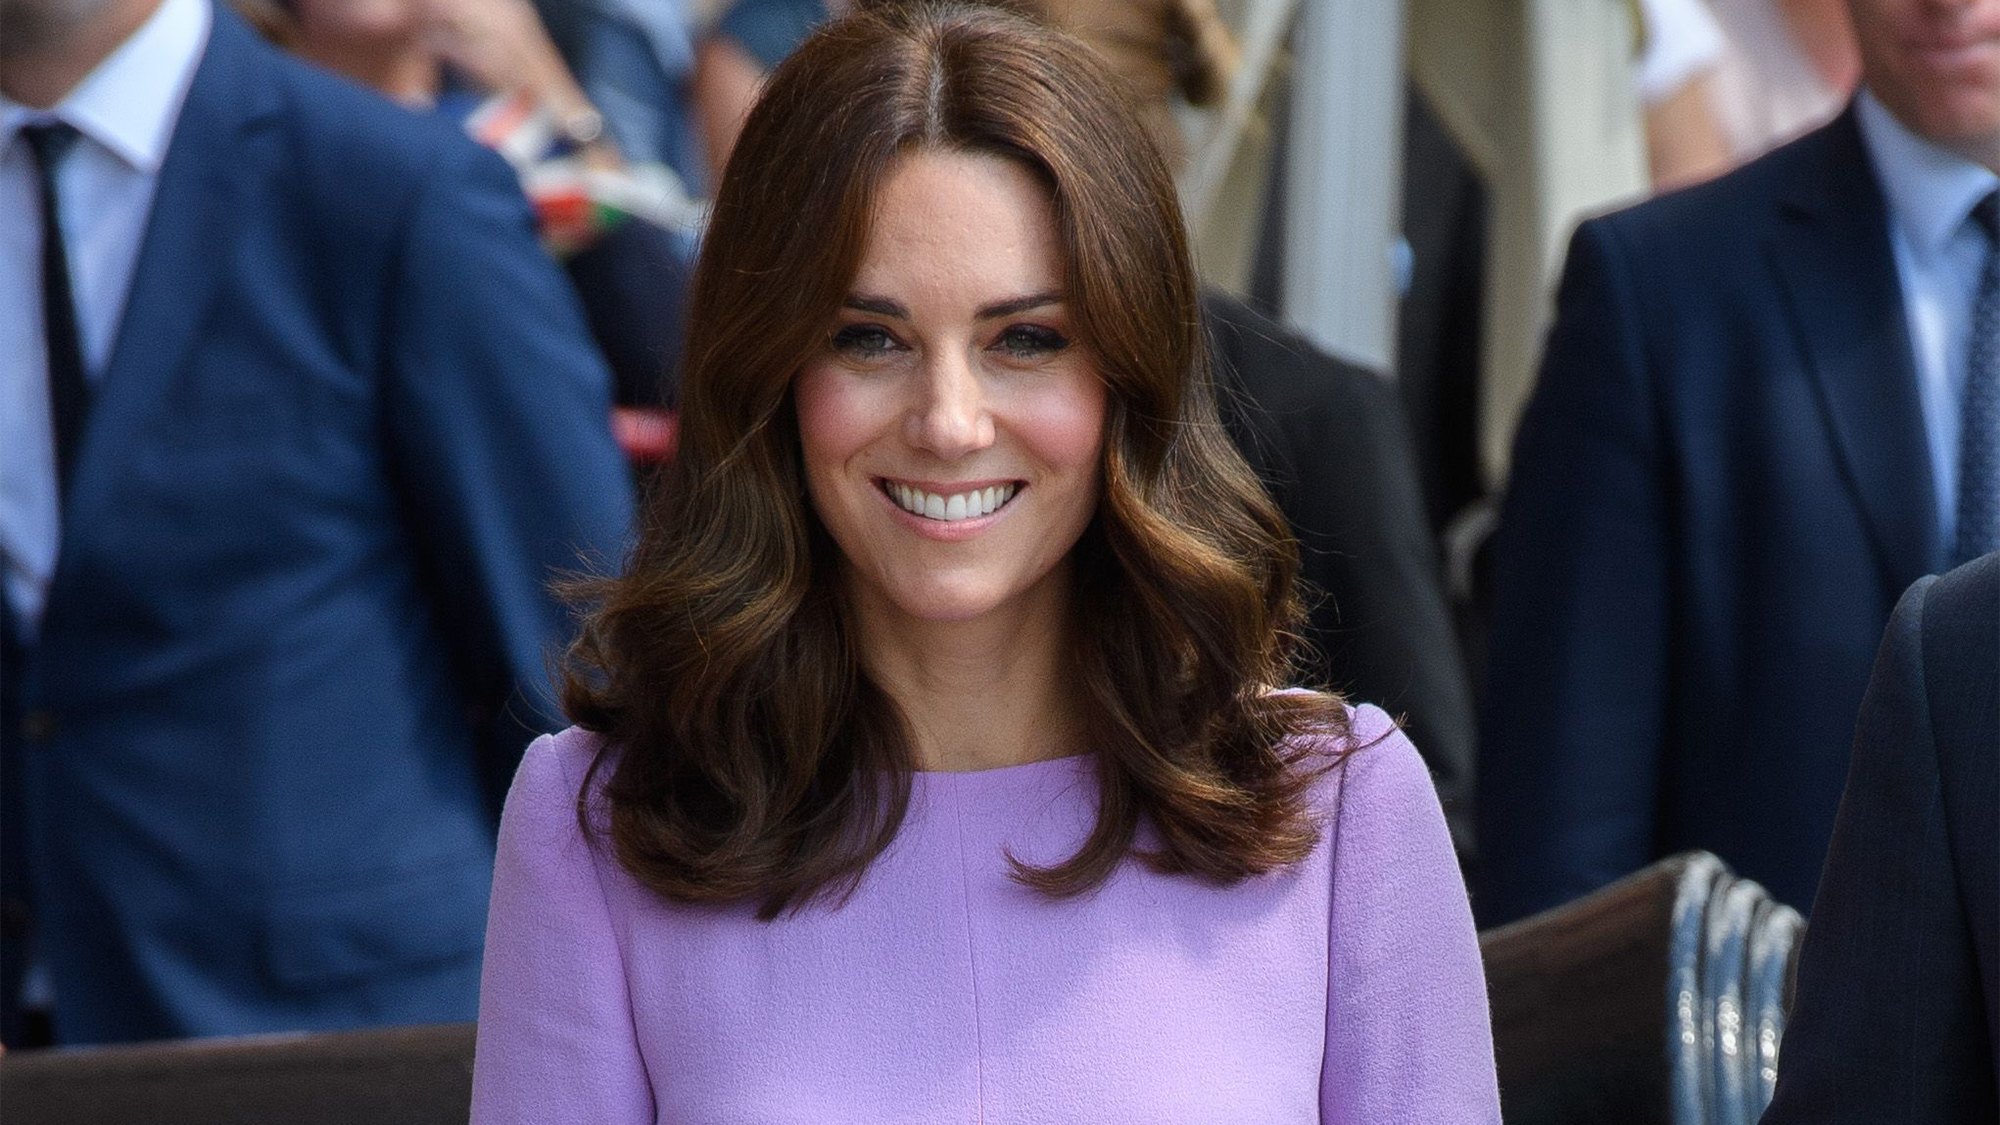 This is the volume-boosting hair hack Kate Middleton uses